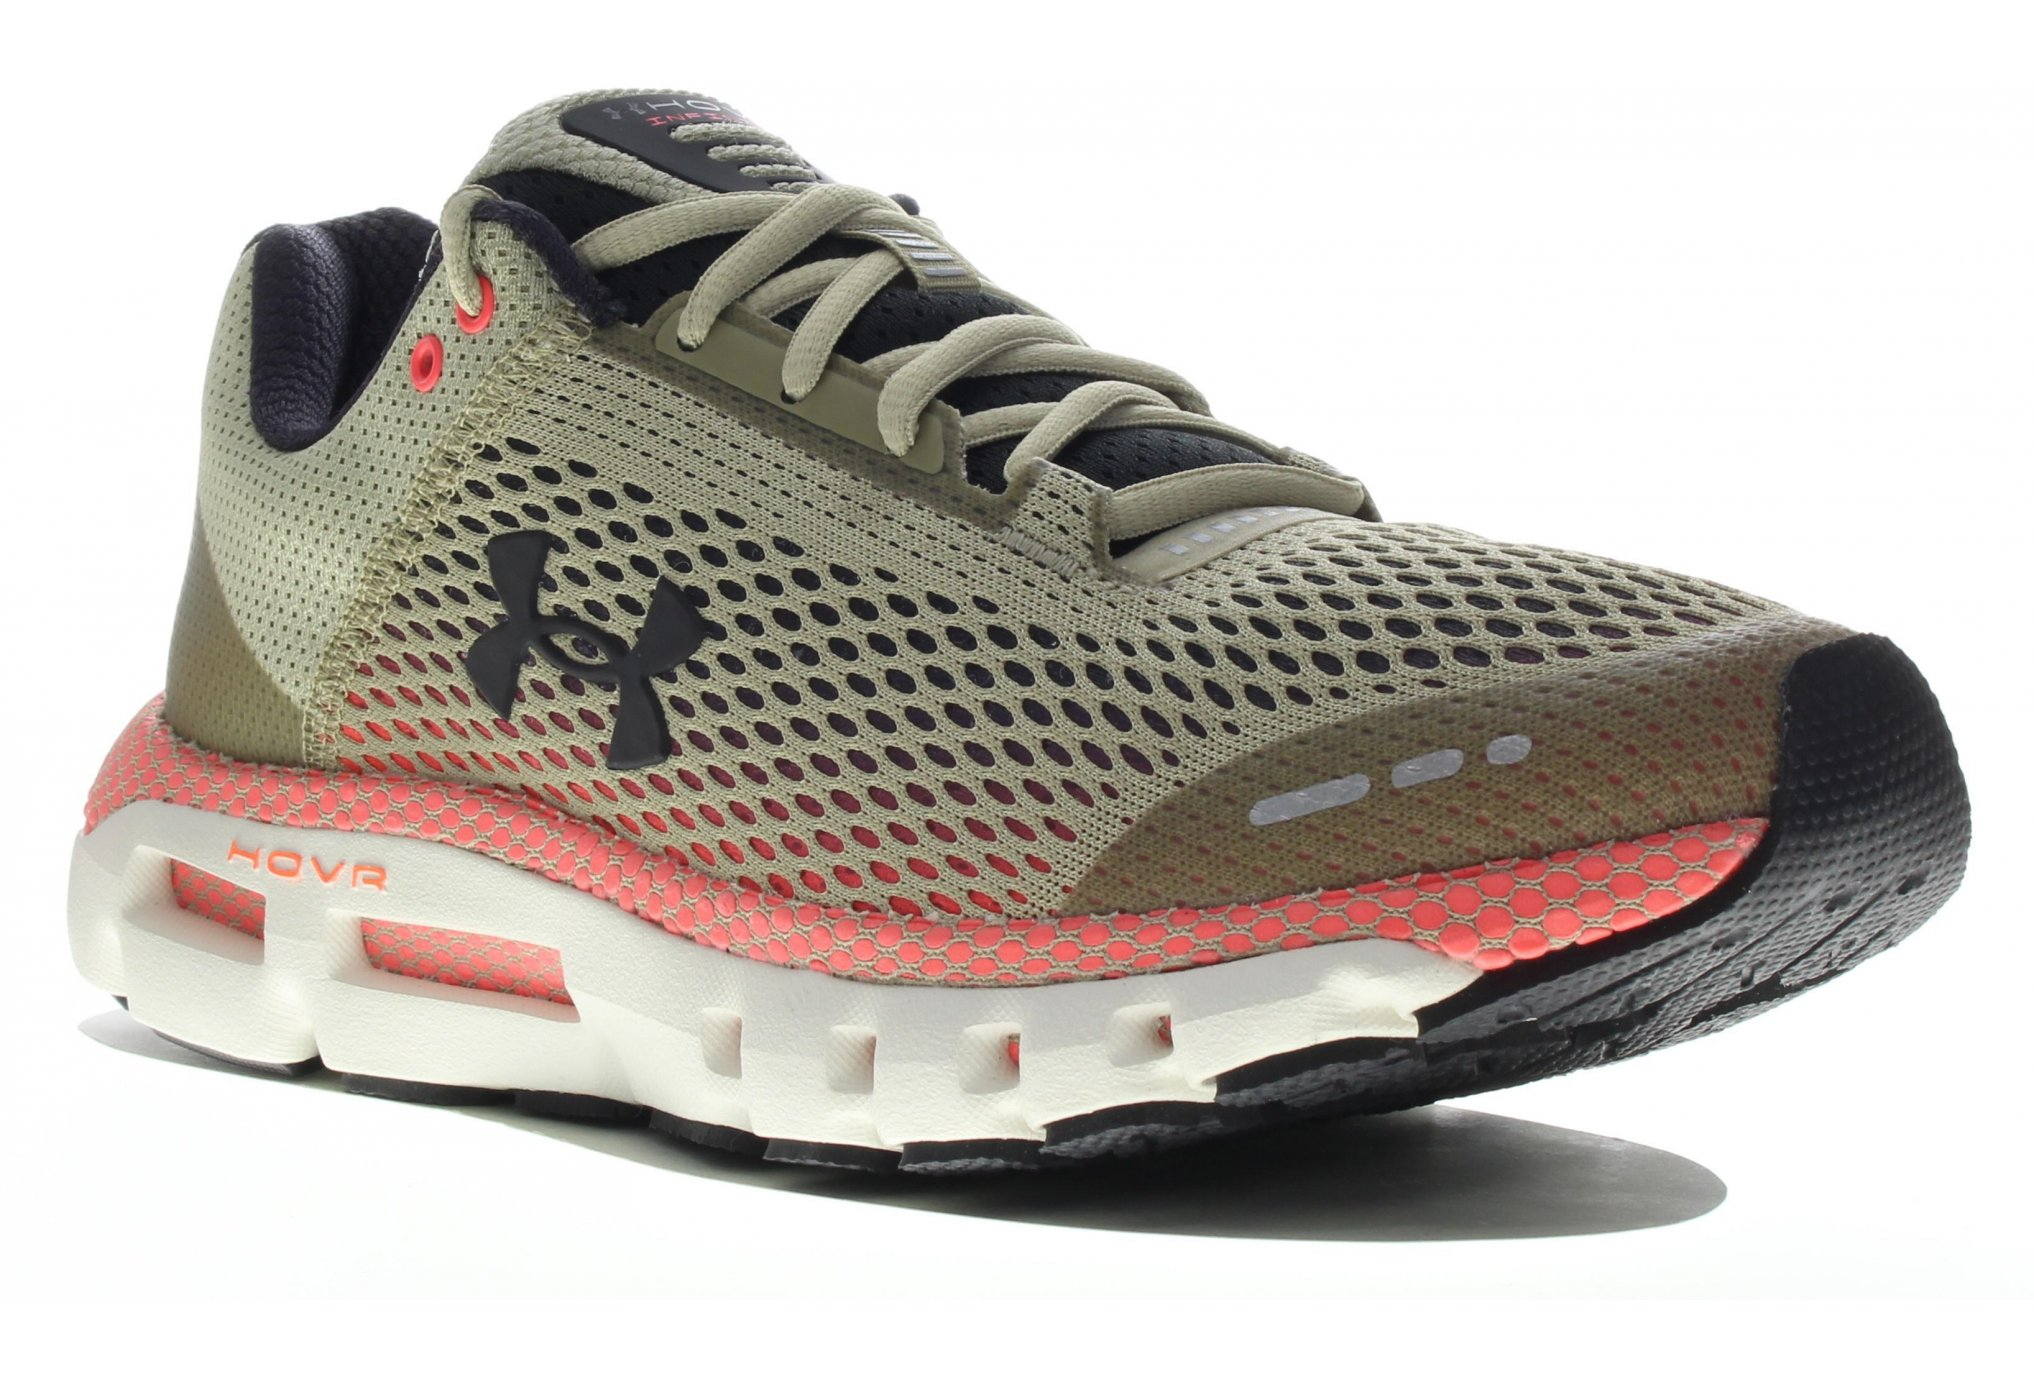 Under Armour HOVR Infinite M Chaussures homme